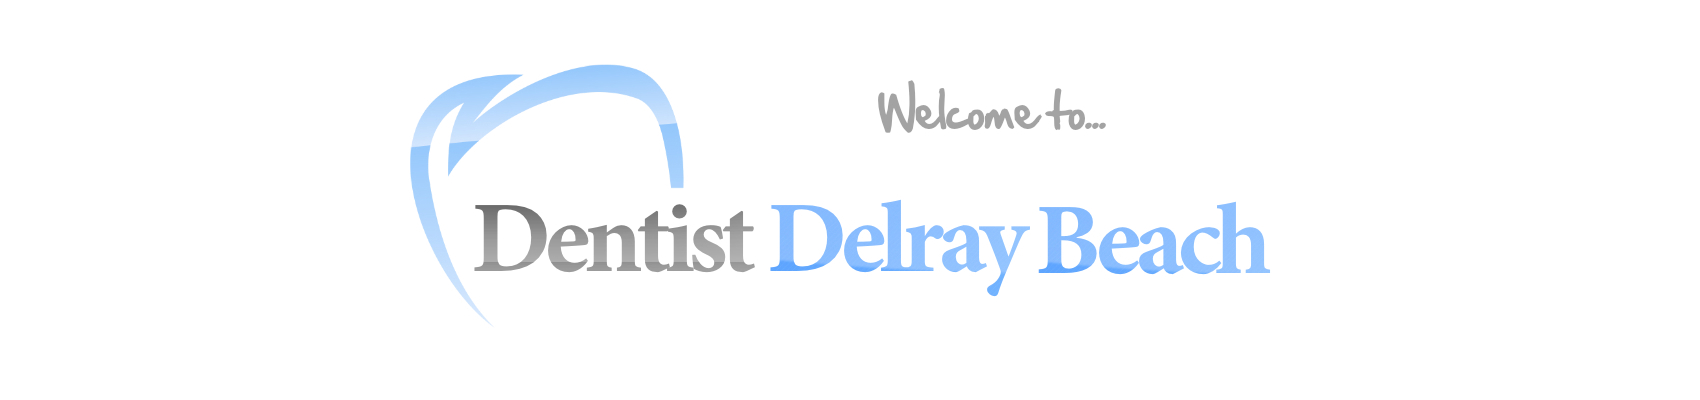 Dentist Delray Beach Slider One